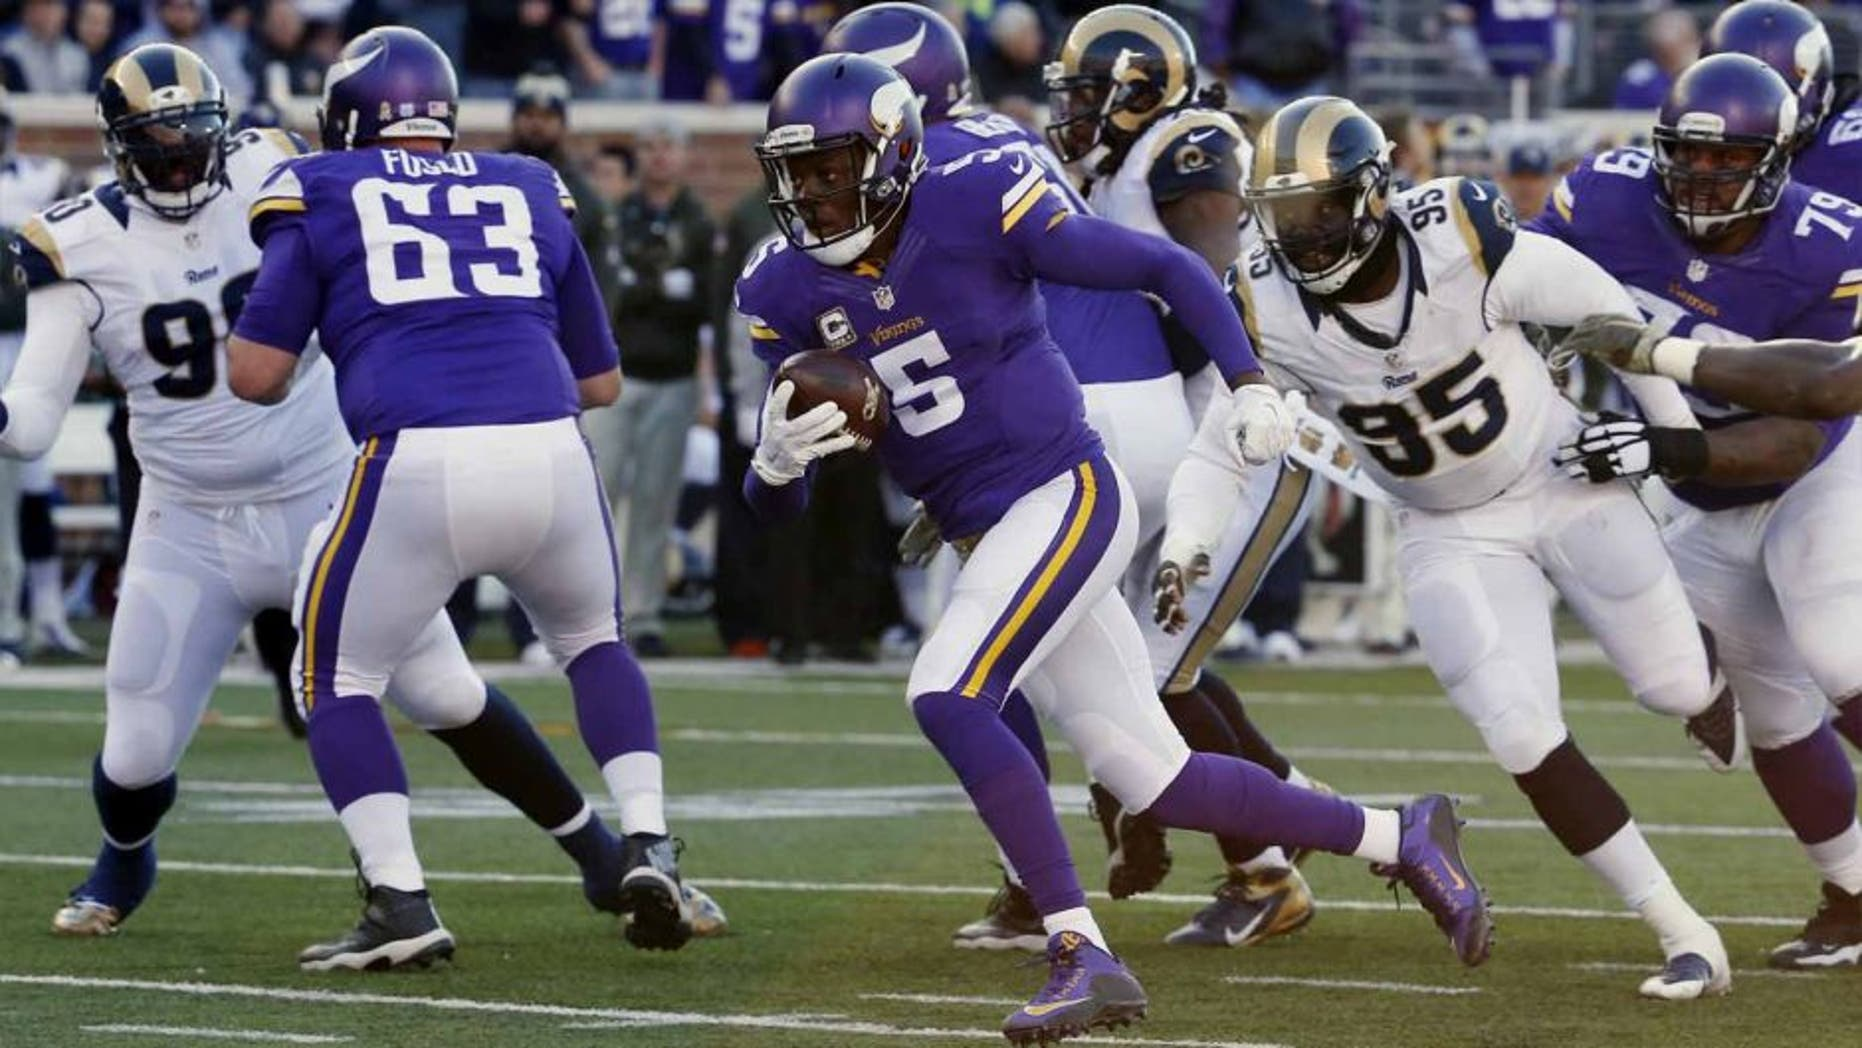 Minnesota Vikings quarterback Teddy Bridgewater breaks away from St. Louis Rams defensive end William Hayes for a touchdown run during the second half of an NFL football game Sunday, Nov. 8, 2015, in Minneapolis.